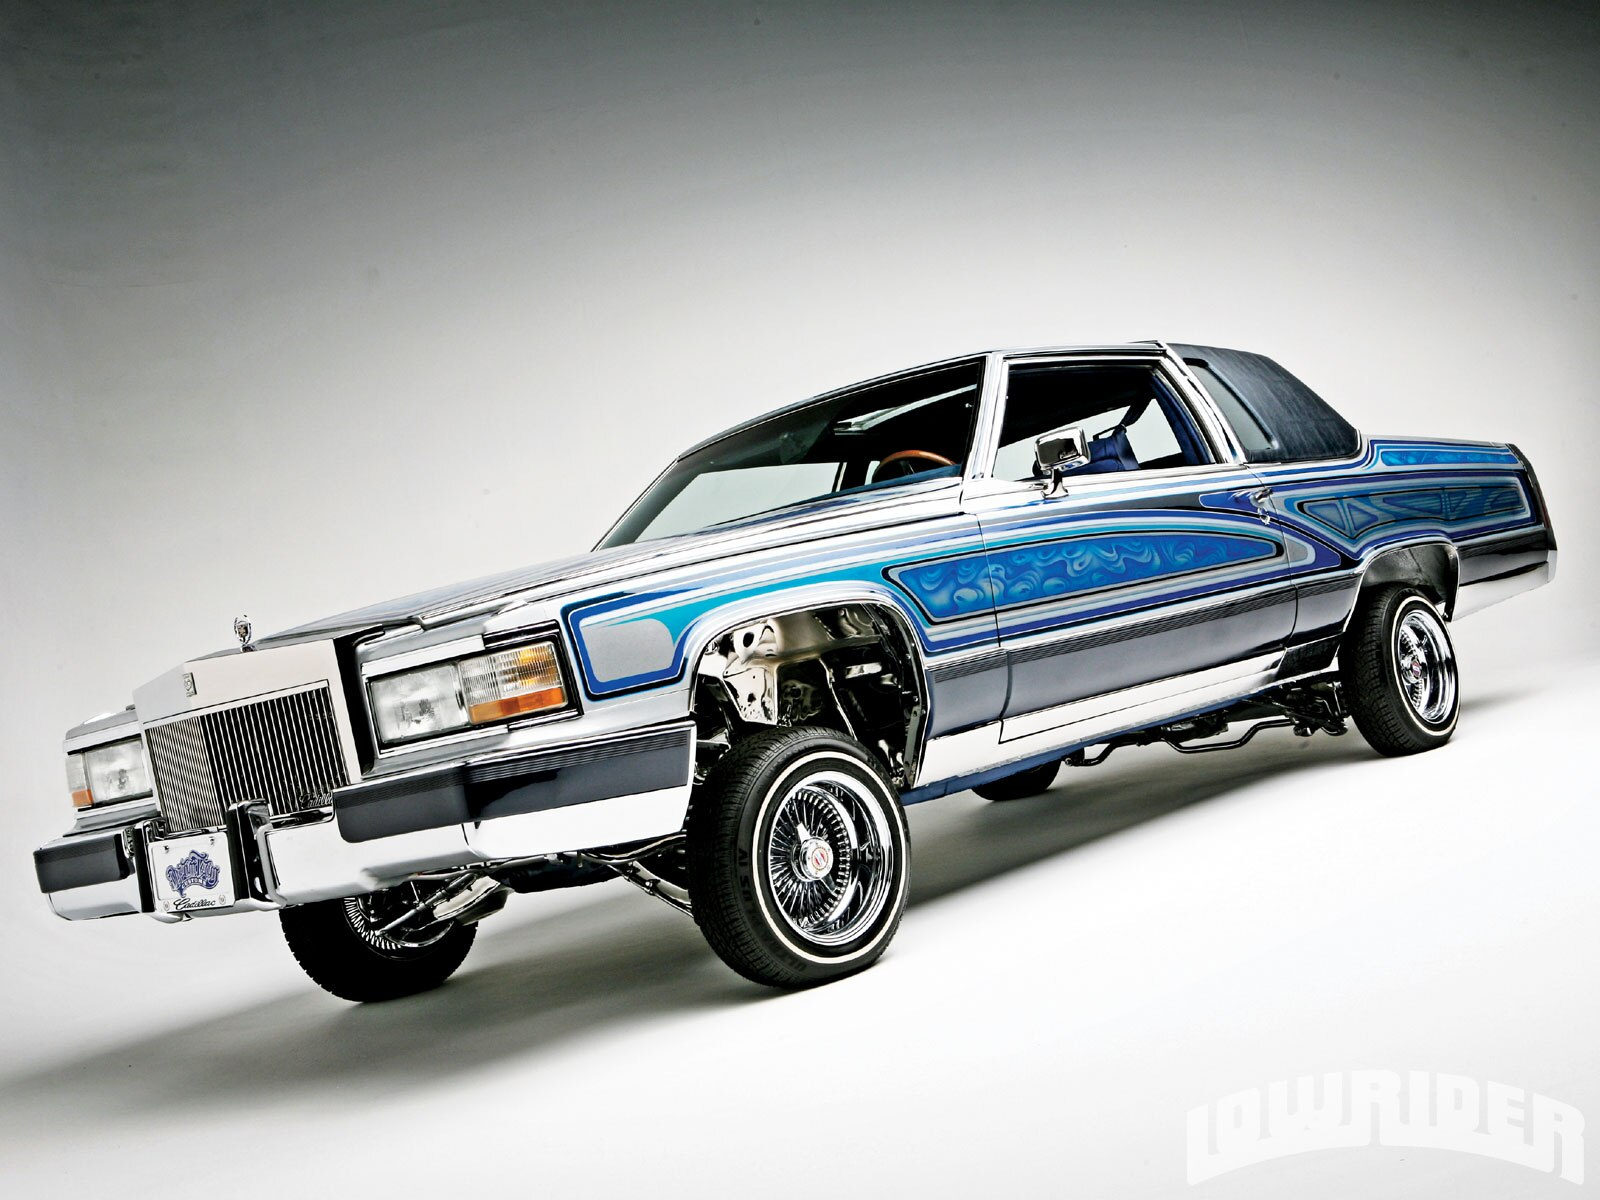 1005-lrmp-02-o-1983-cadillac-fleetwood-brougham-brougham-driver-side-front2